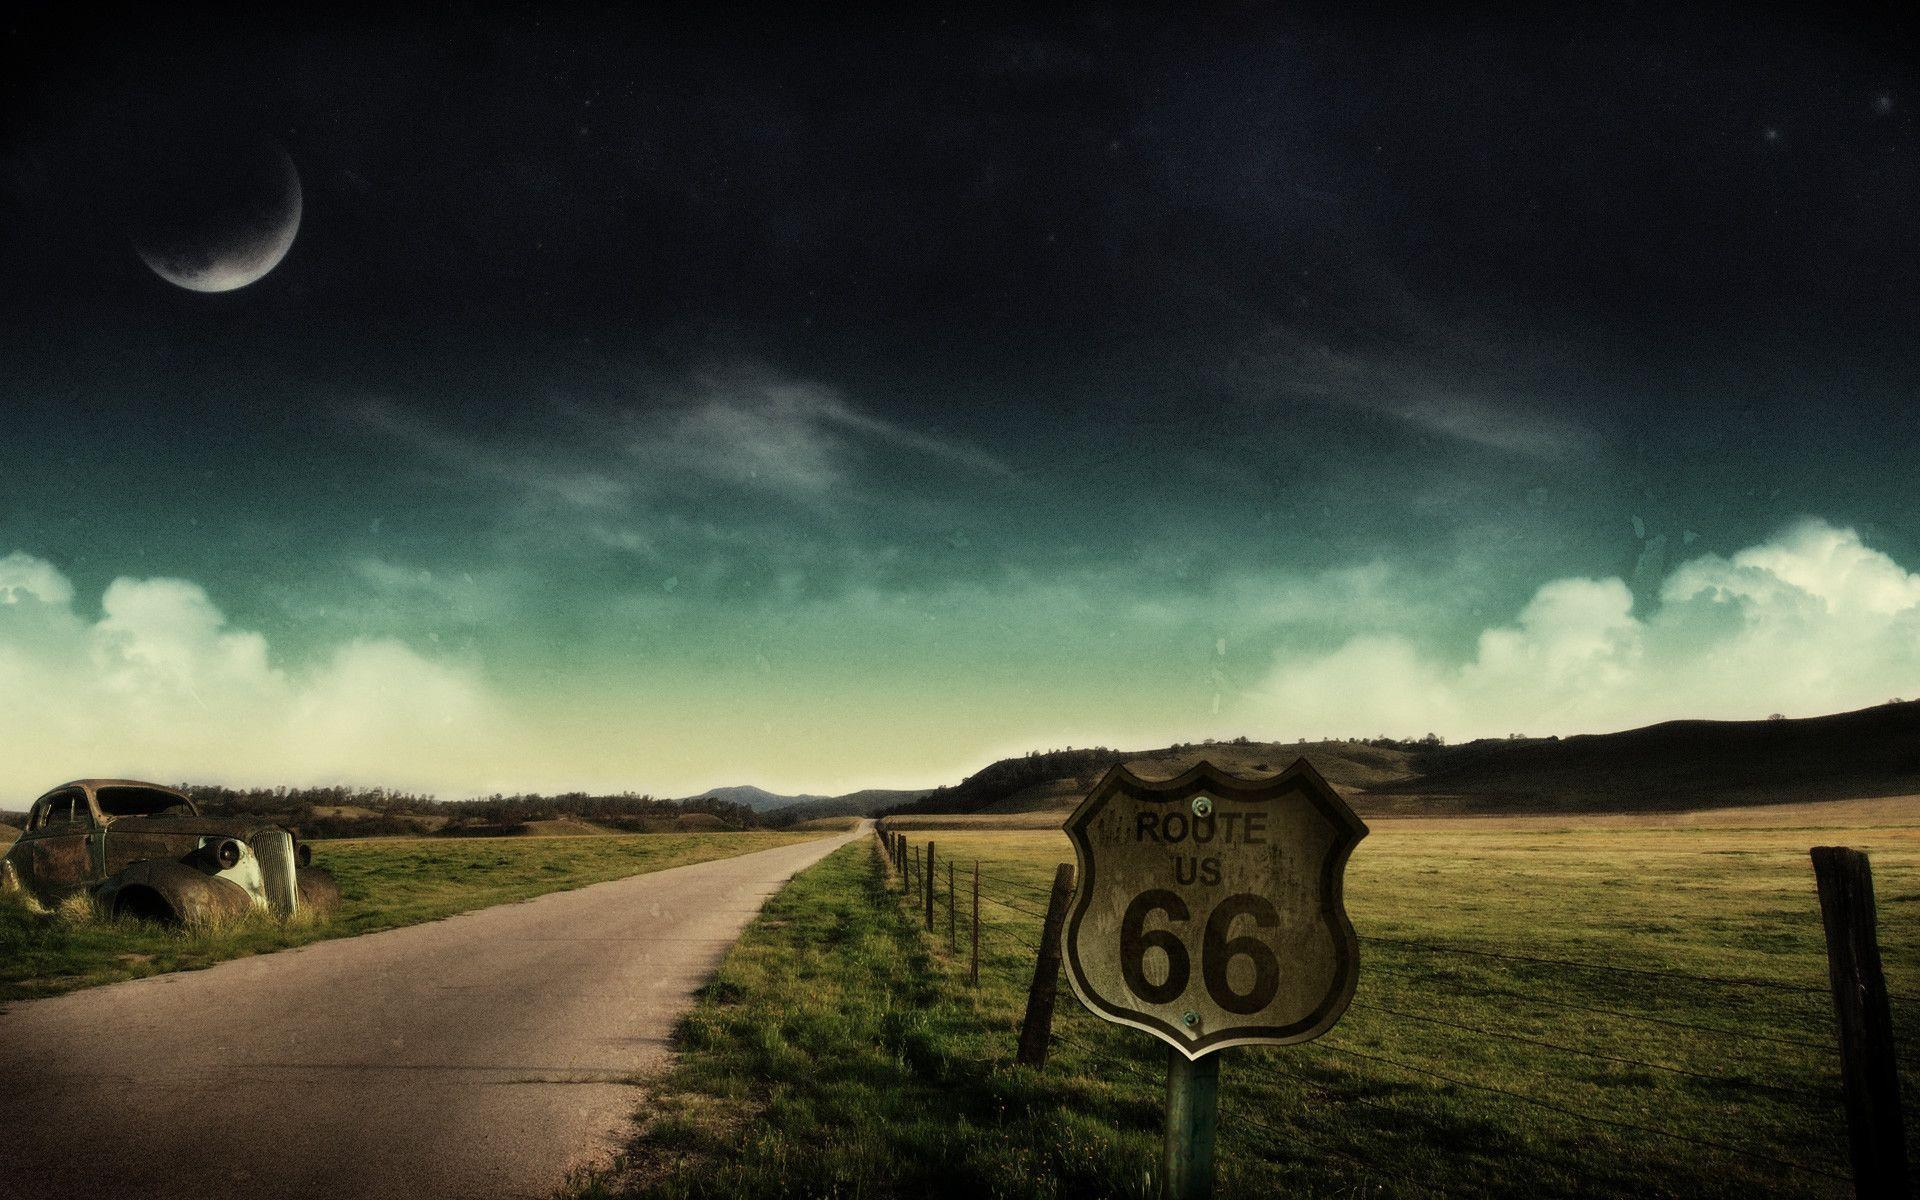 Route 66 Wallpapers - Wallpaper Cave